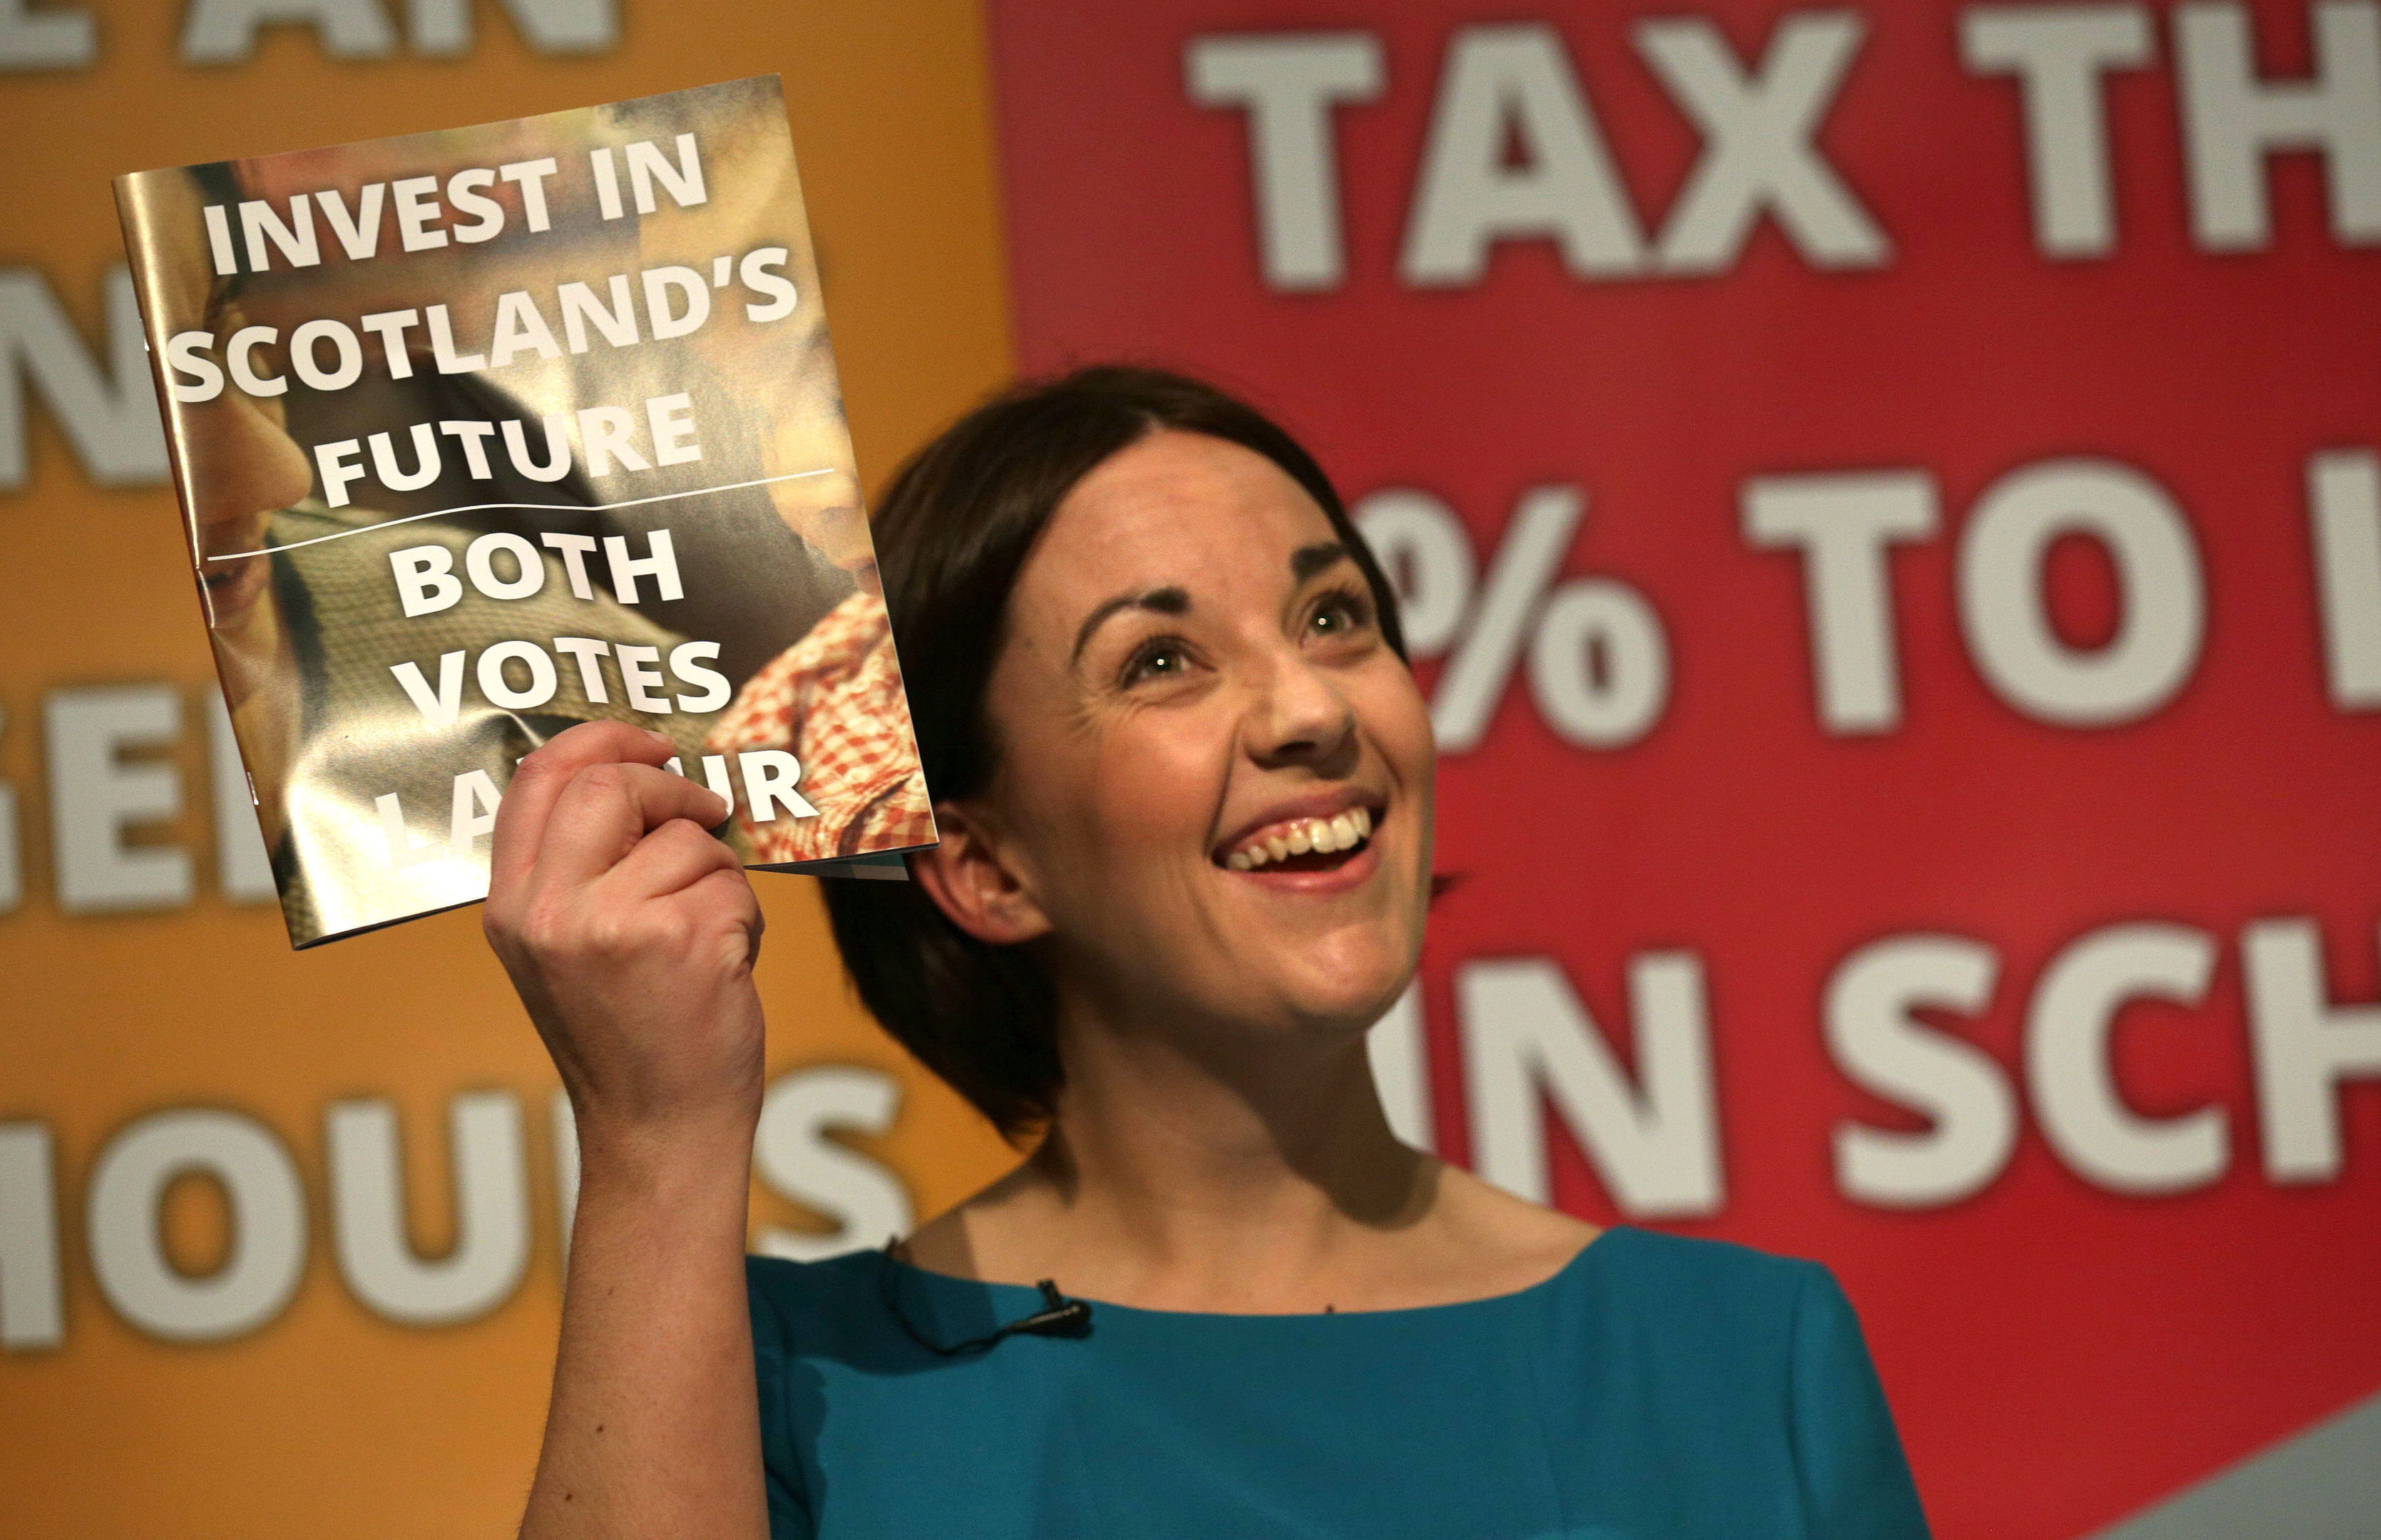 Scottish Labour leader Kezia Dugdale launches her party's manifesto at the Grassmarket Community Project in Edinburgh.